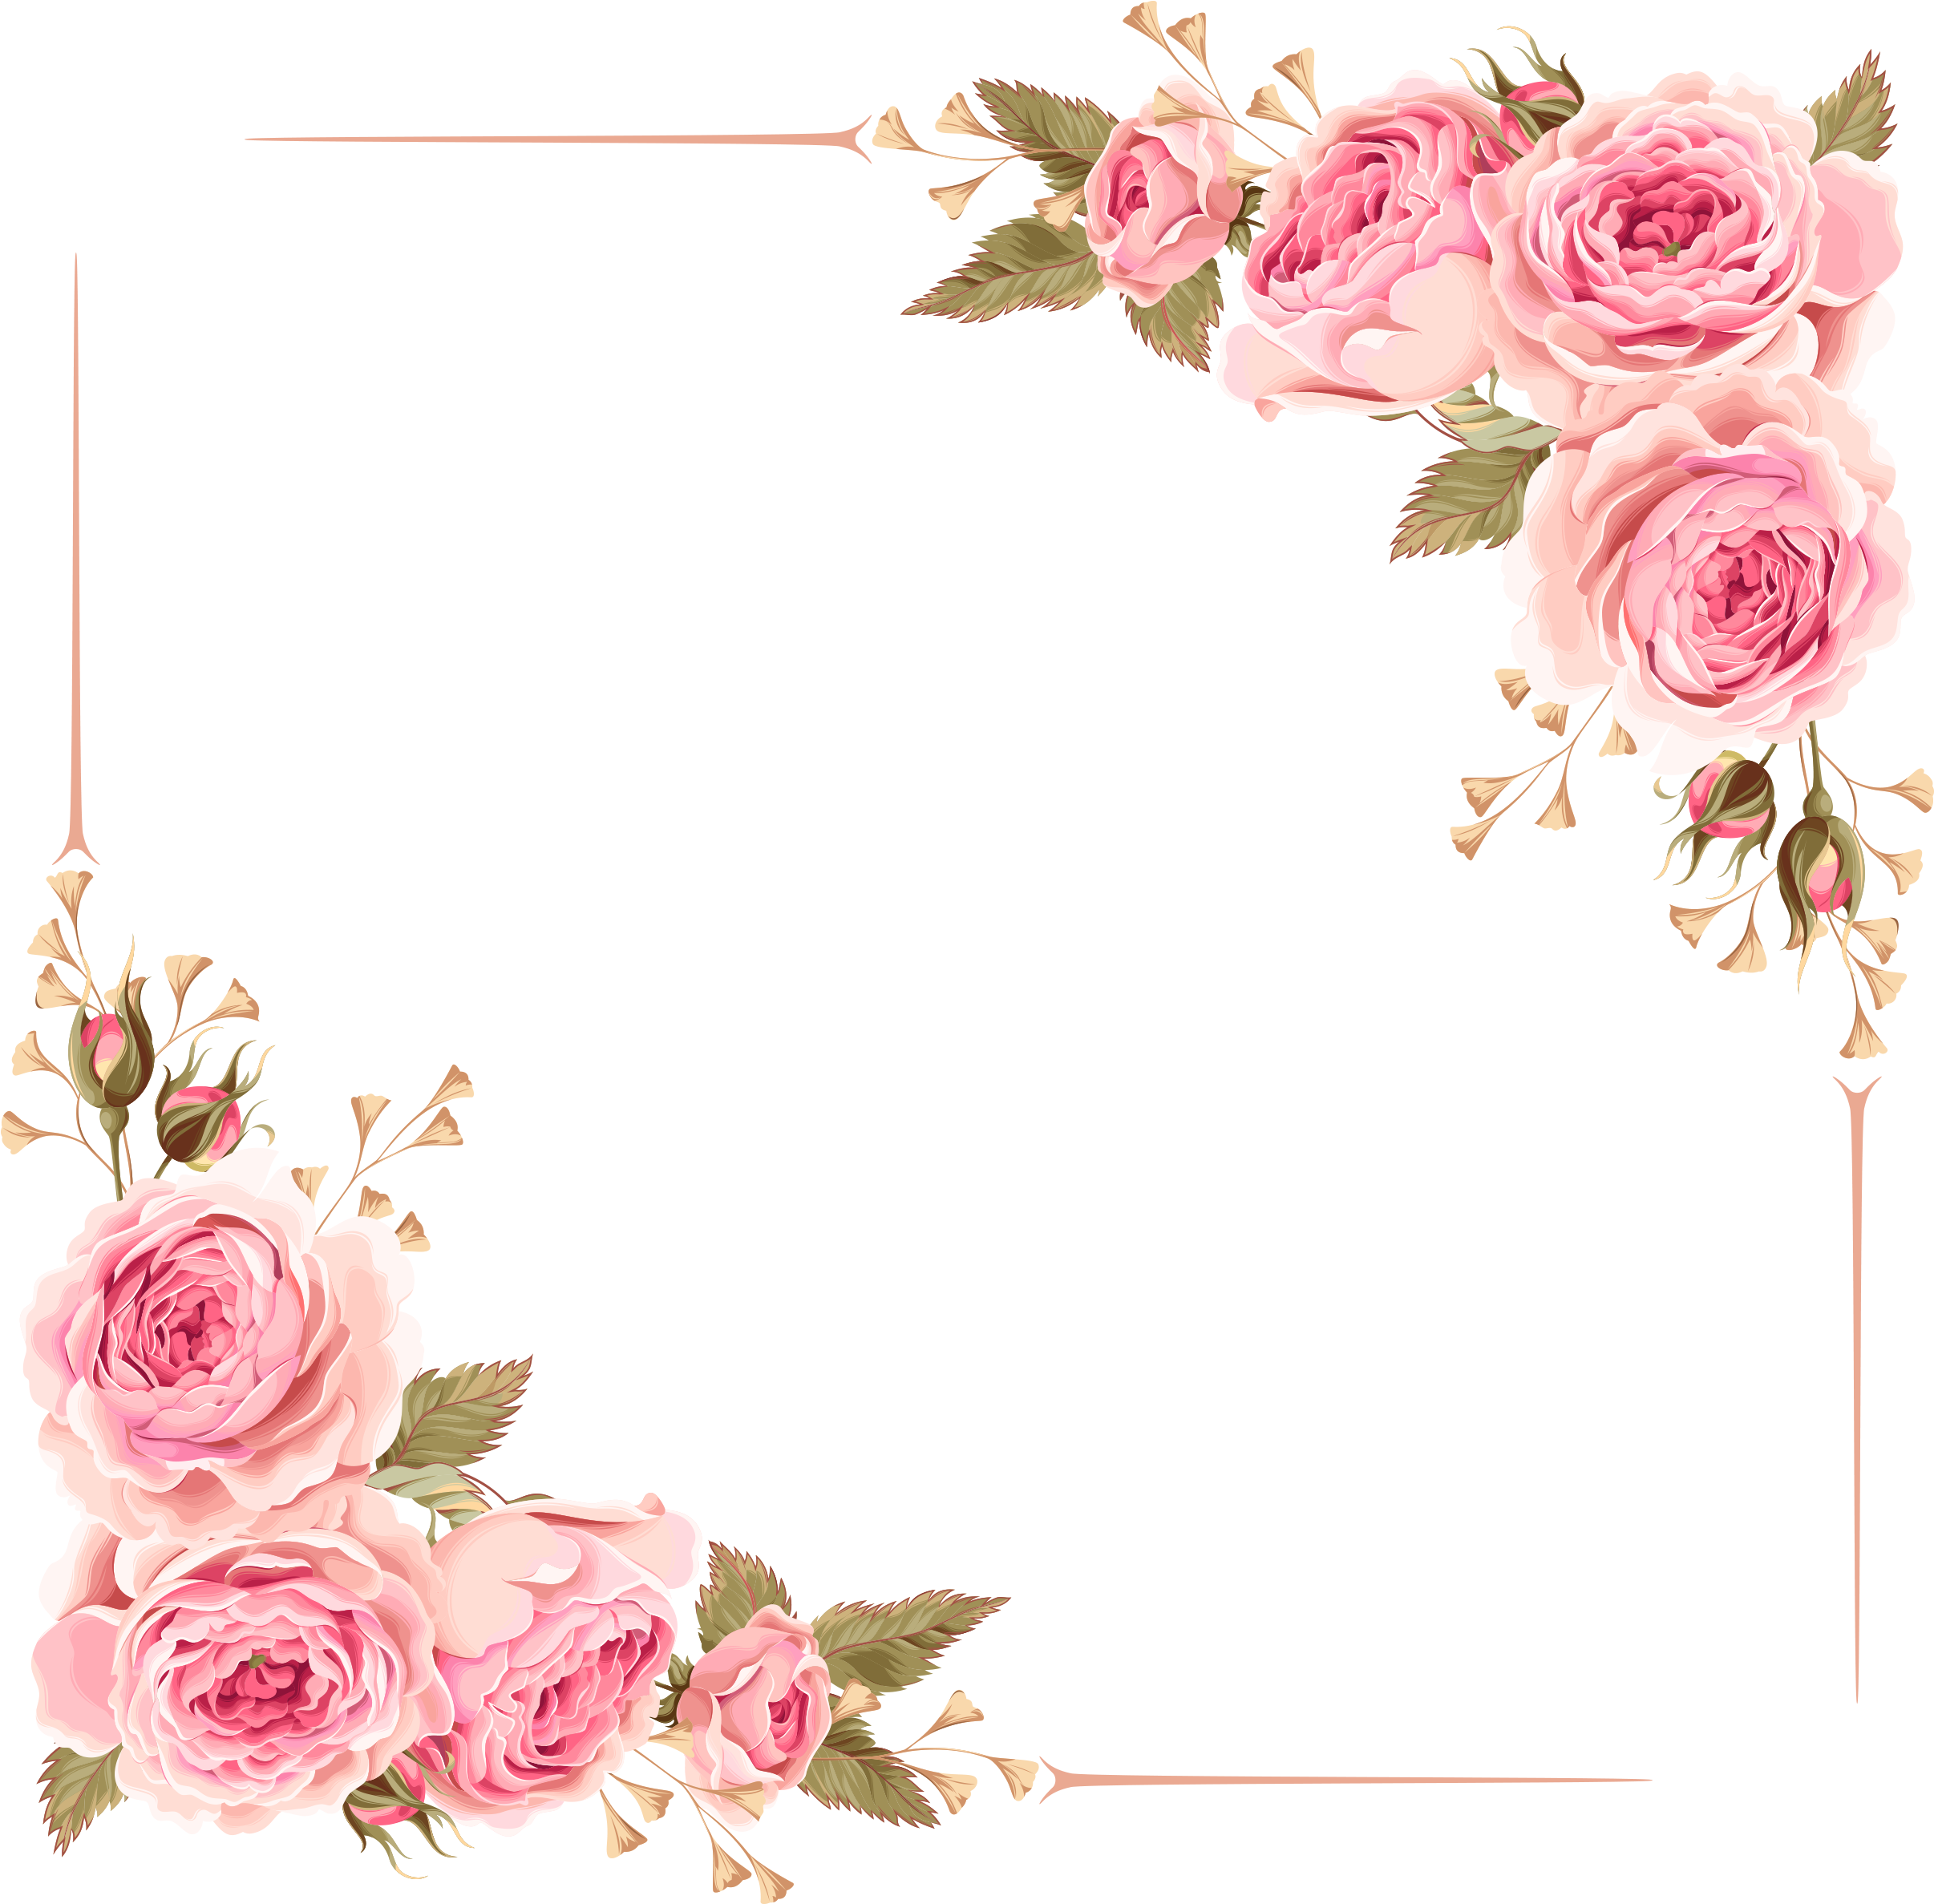 Wedding Invitation Flower Rose Pink Clip Art - Wedding Invitation Flower Borders (2480x2480)